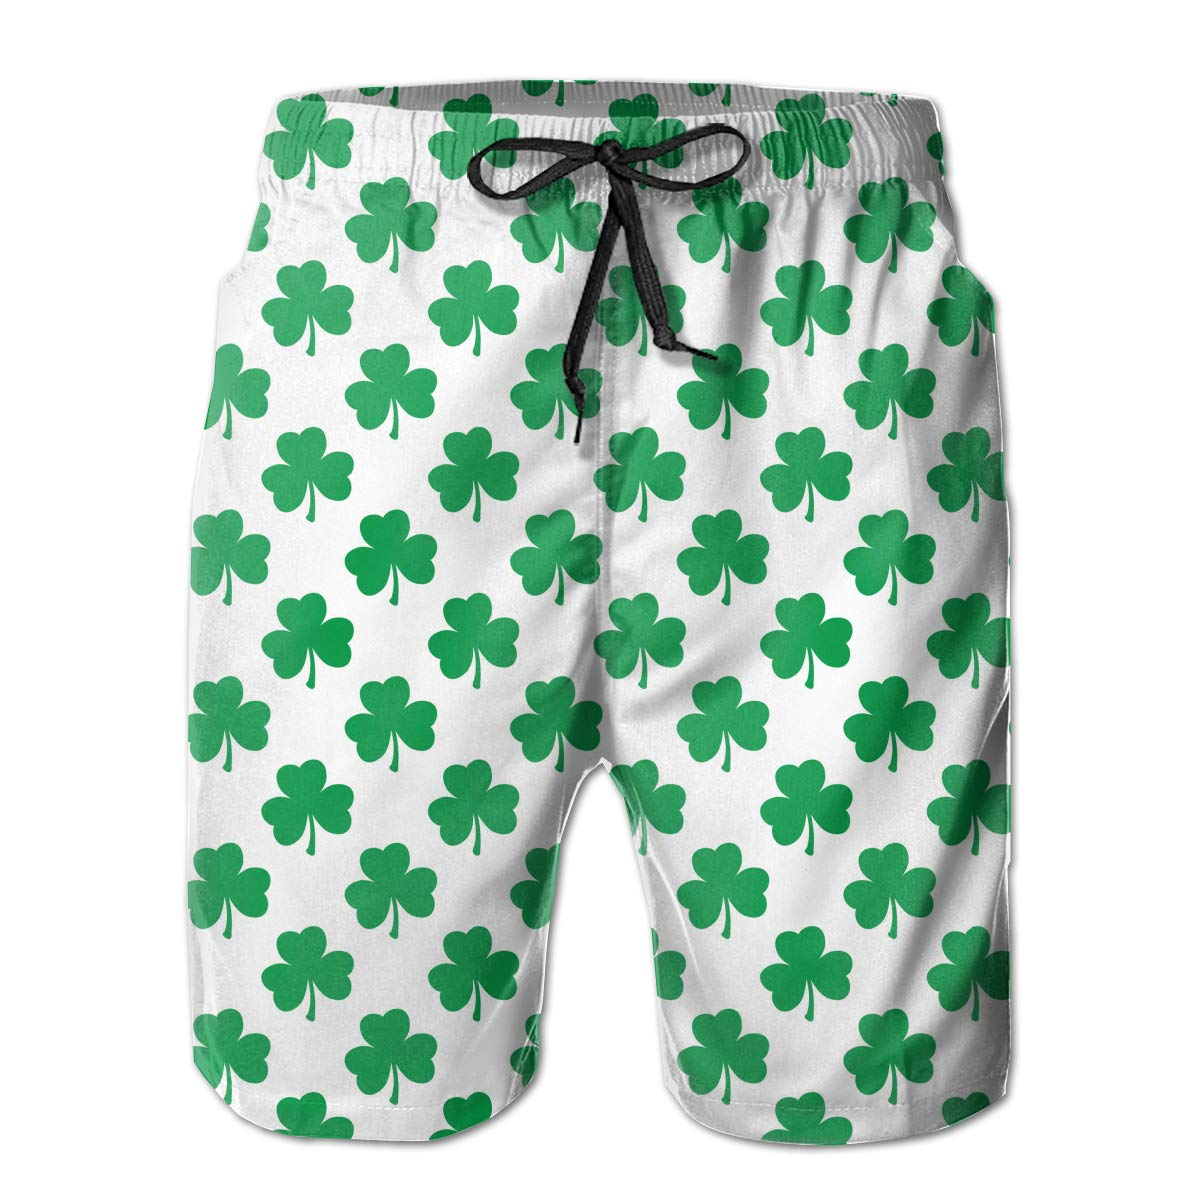 Mens Casual Swim Trunks St Patricks Day Decorations Clover Flower Green Beach Shorts with Elastic Waist